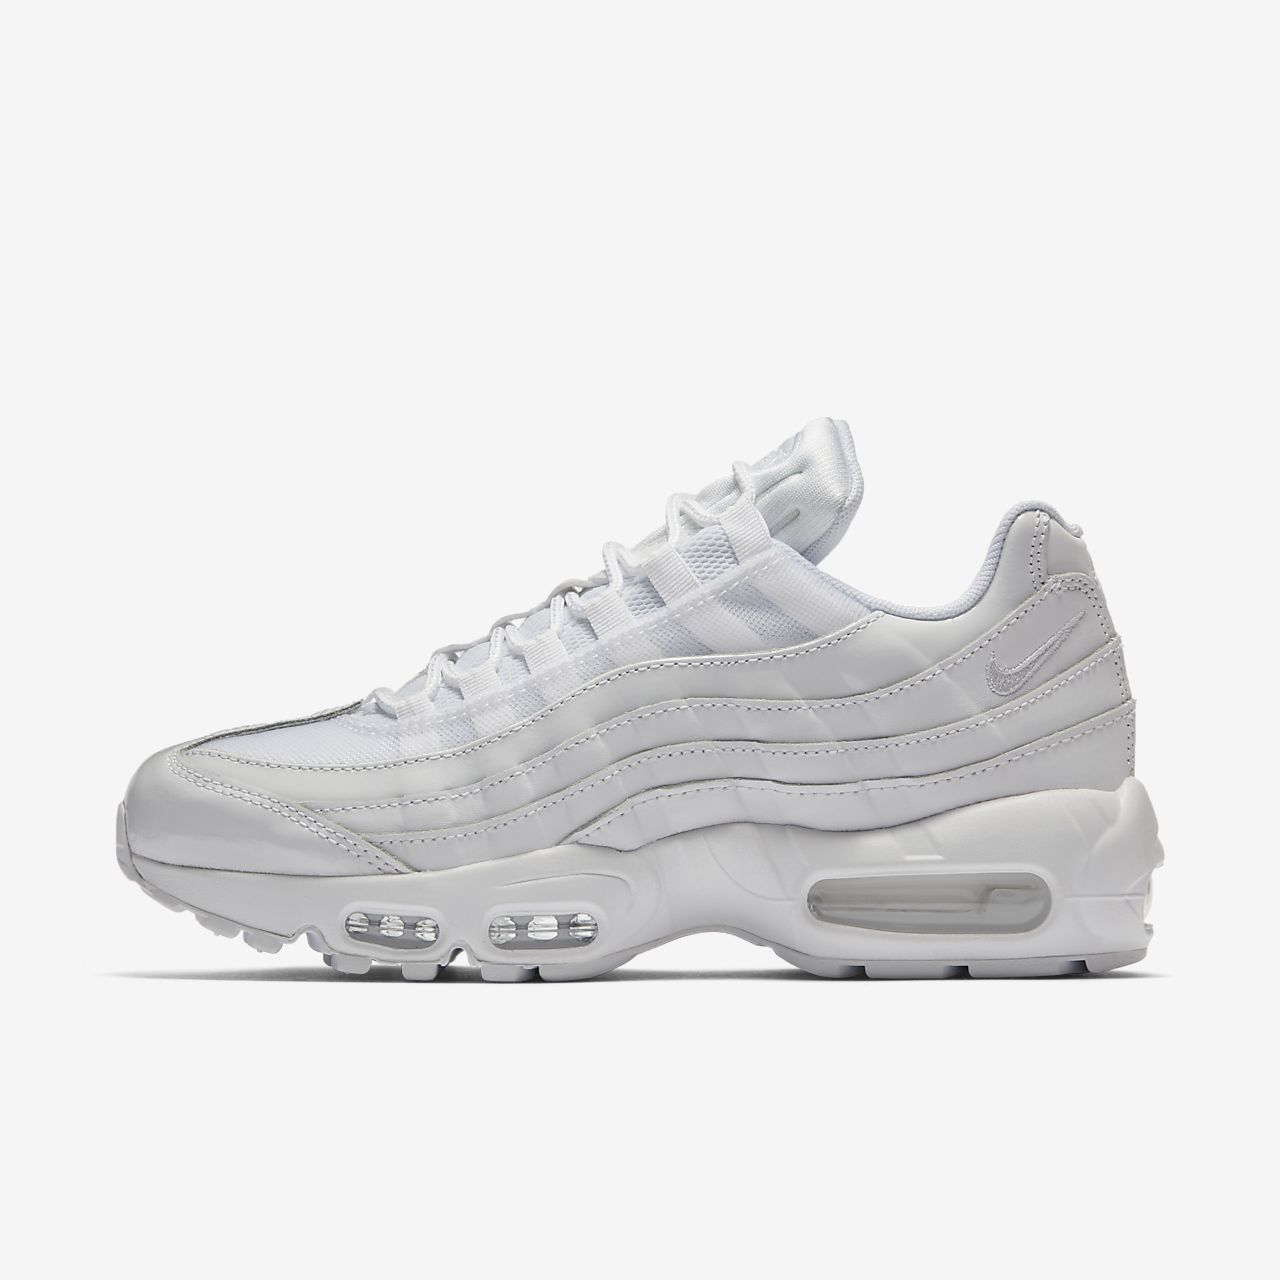 fdc2bff49d Chaussure Nike Air Max 95 pour Femme. Nike.com BE